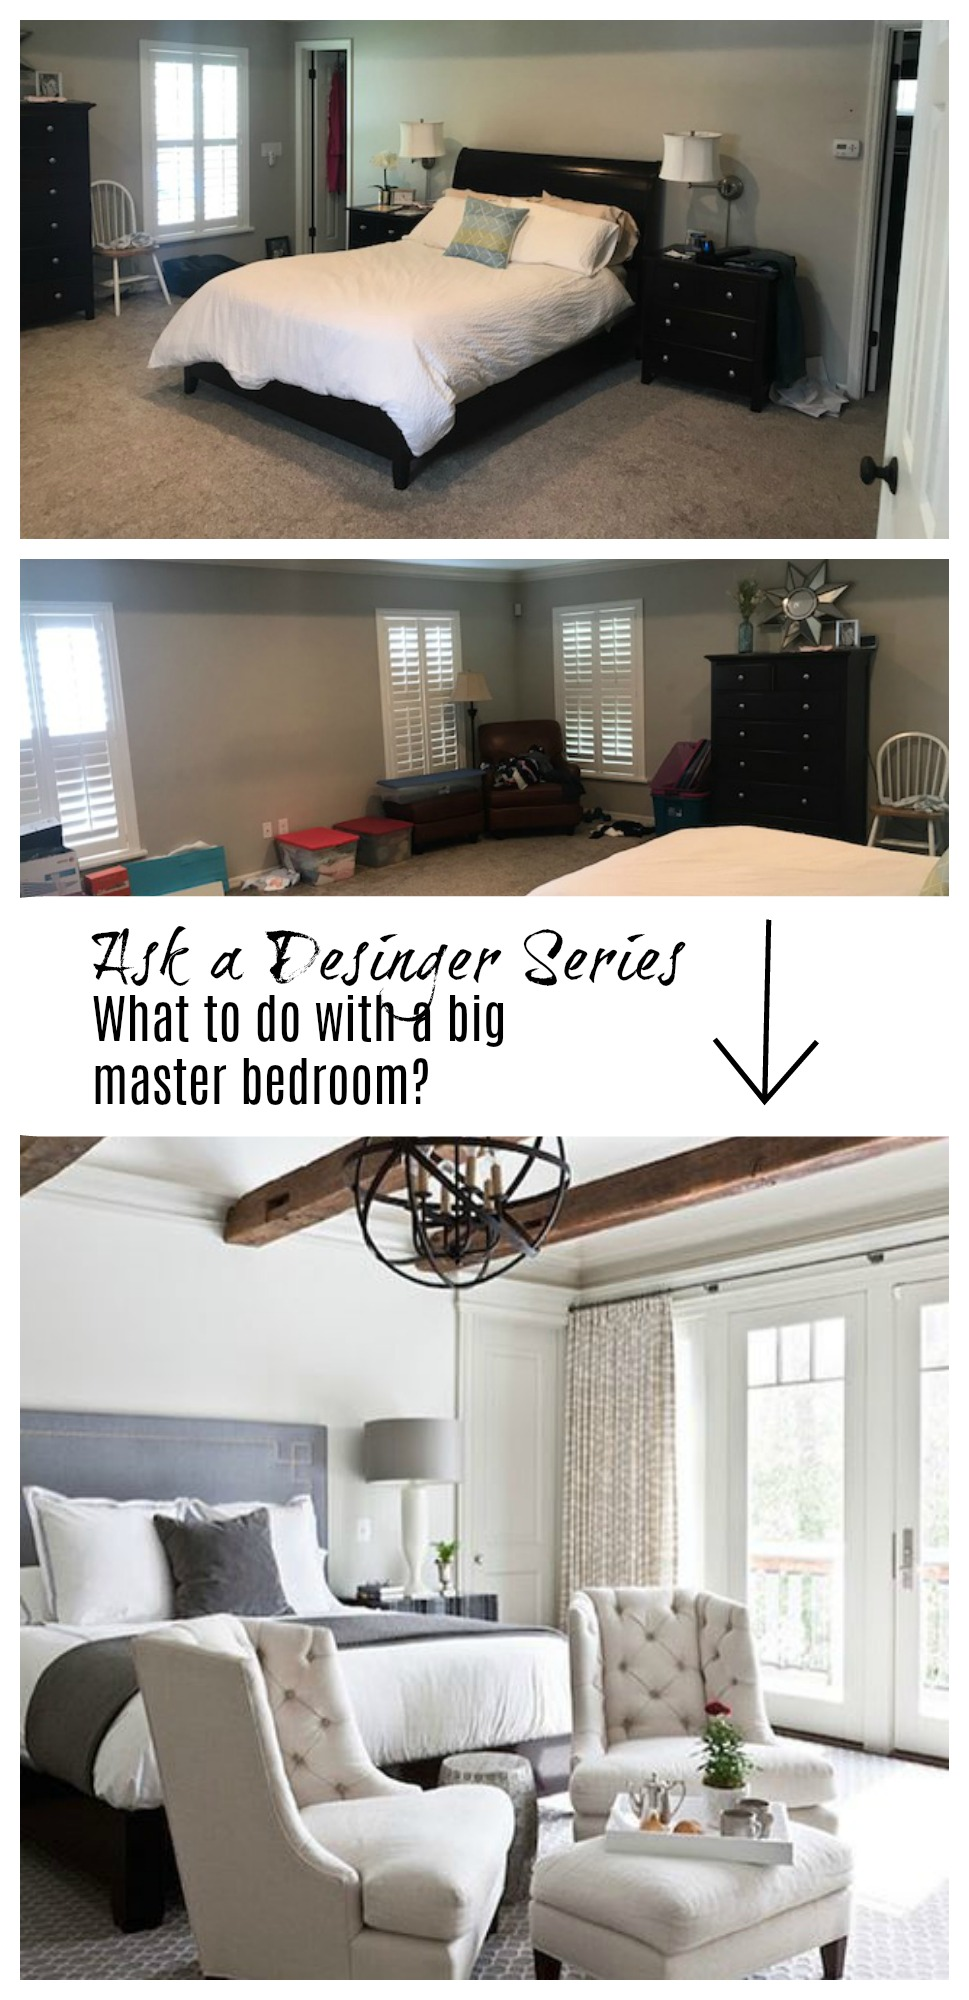 Ask a Desinger Series- Where to start in a large Master Bedroom?